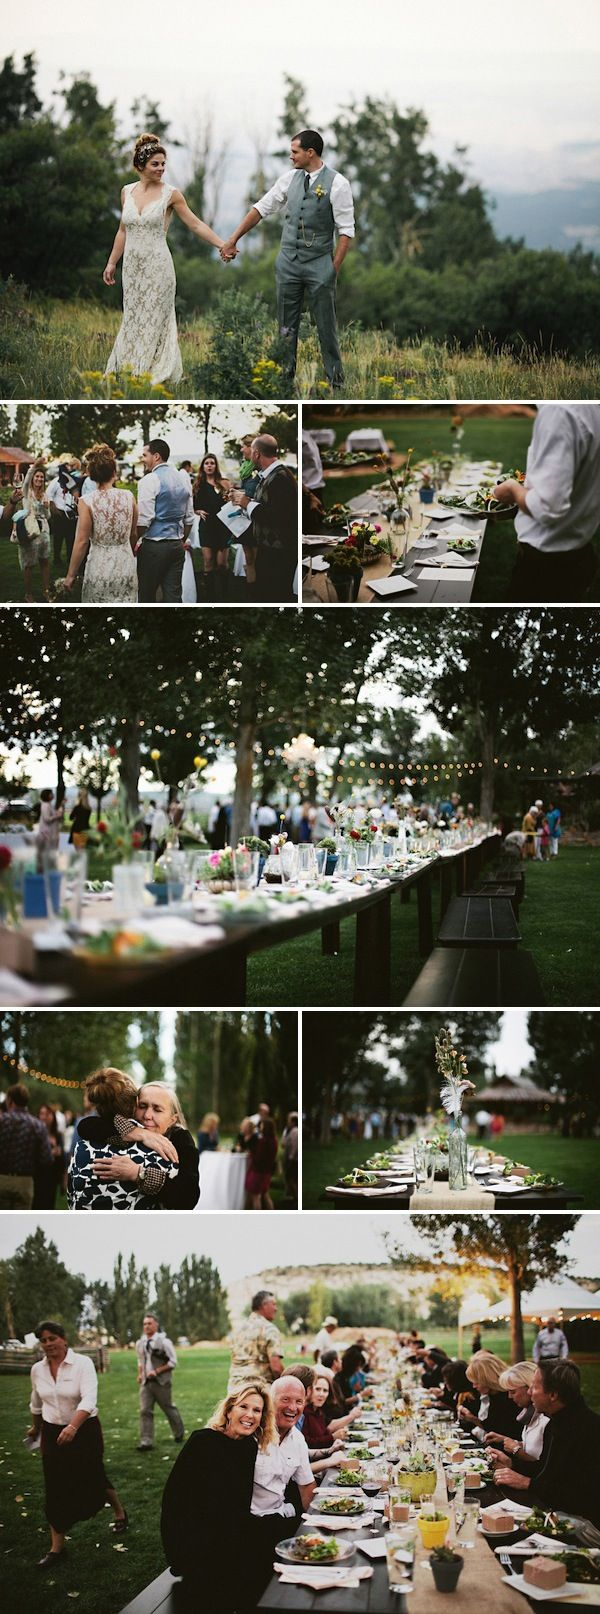 10.5-rustic-outdoor-wedding-utah-Jonas-Seaman-Wedding-Photographer-21